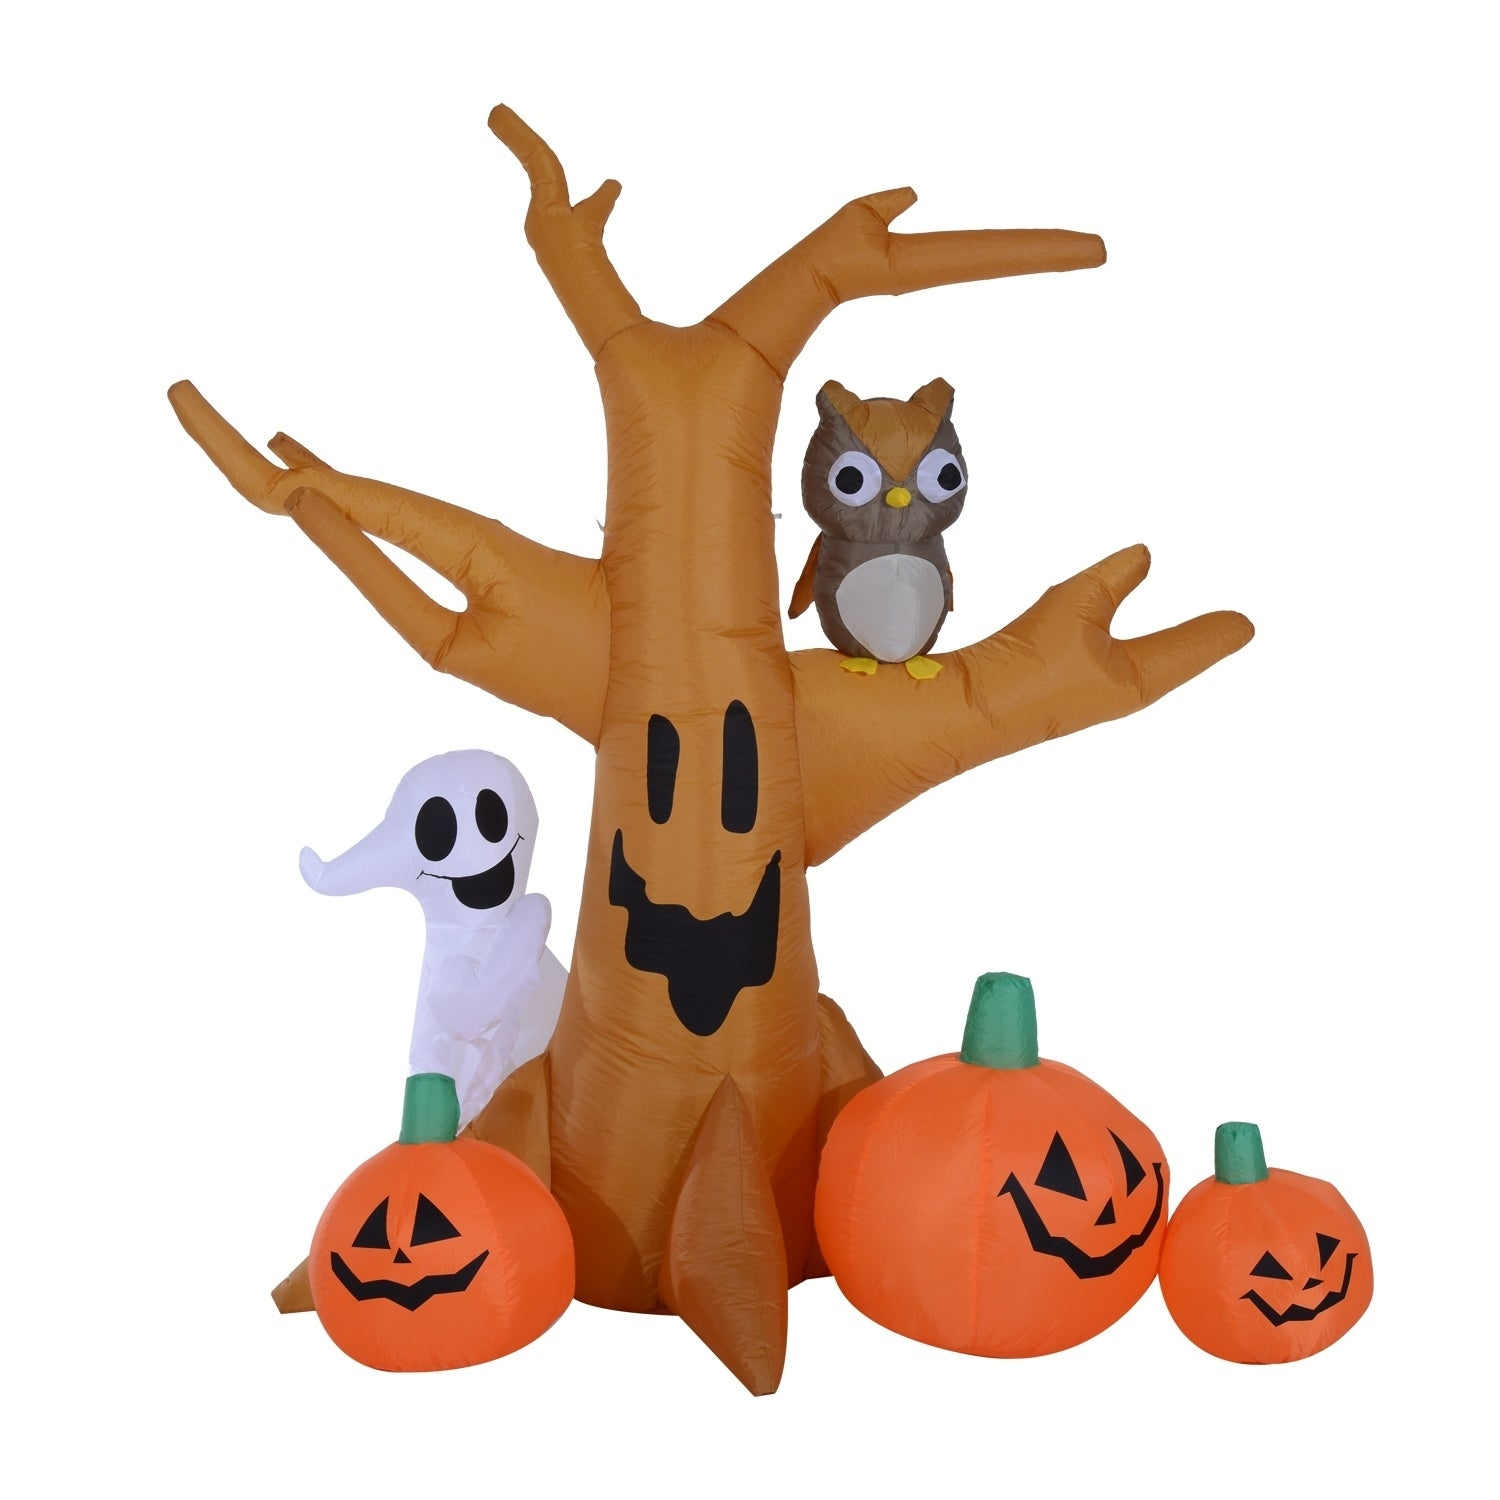 Image of: Shop Black Friday Deals On 7 5 Tall Outdoor Lighted Airblown Inflatable Halloween Decoration Haunted Tree With Owl Ghost Pumpkins Overstock 18072230